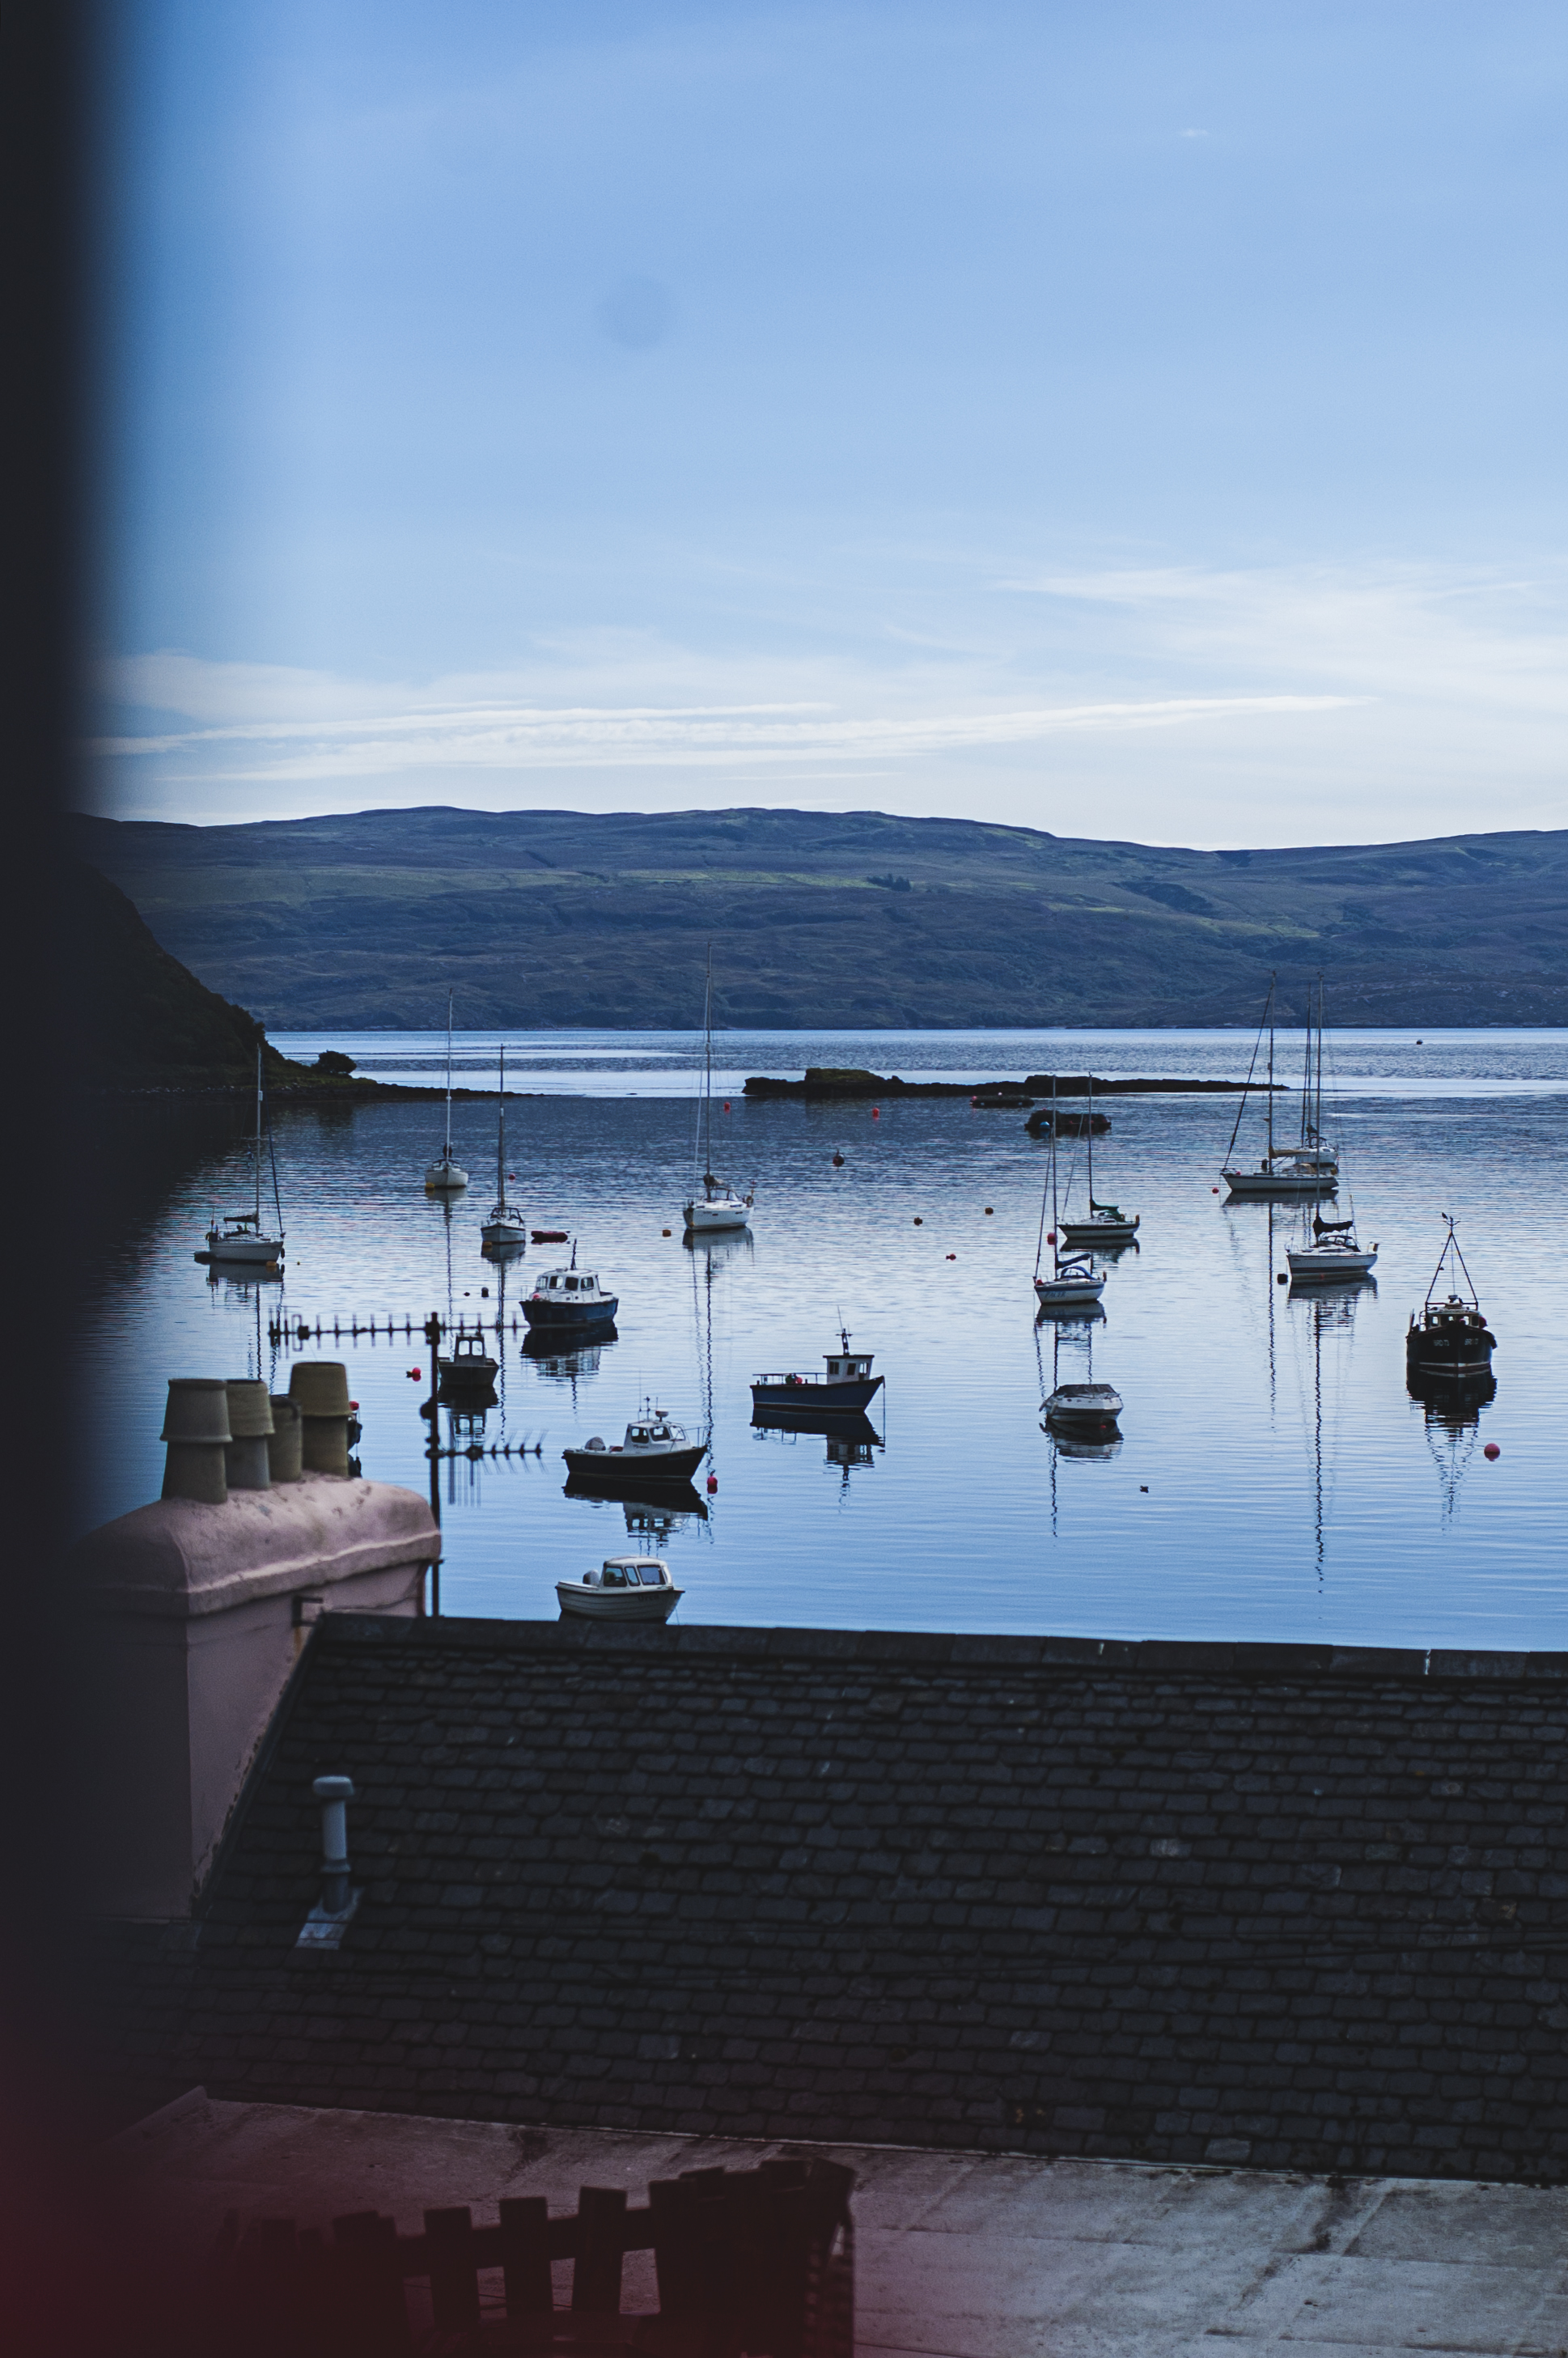 Overlooking the Portree Harbour